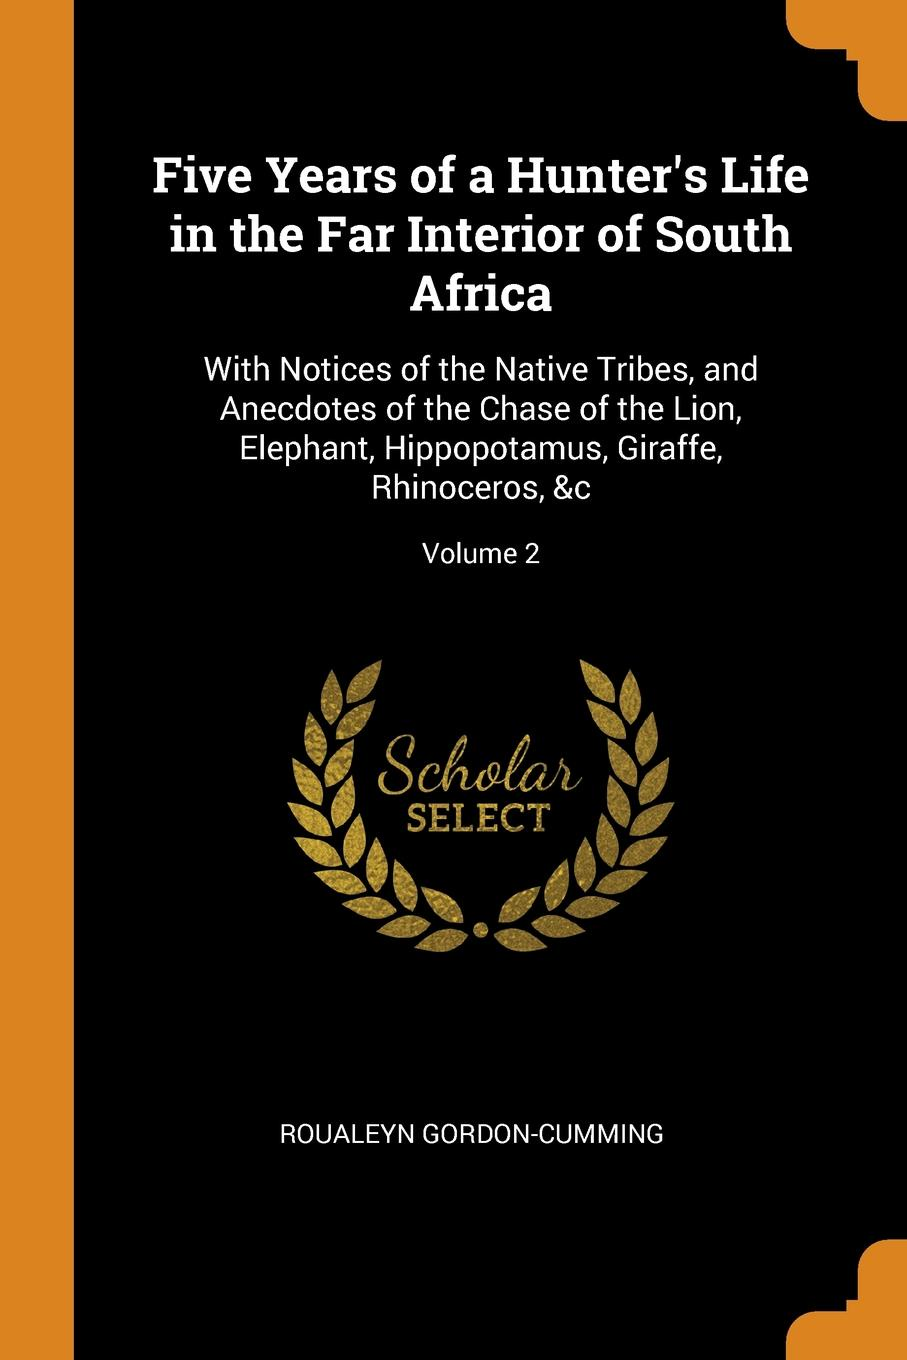 Five Years of a Hunter.s Life in the Far Interior of South Africa. With Notices of the Native Tribes, and Anecdotes of the Chase of the Lion, Elephant, Hippopotamus, Giraffe, Rhinoceros, .c; Volume 2